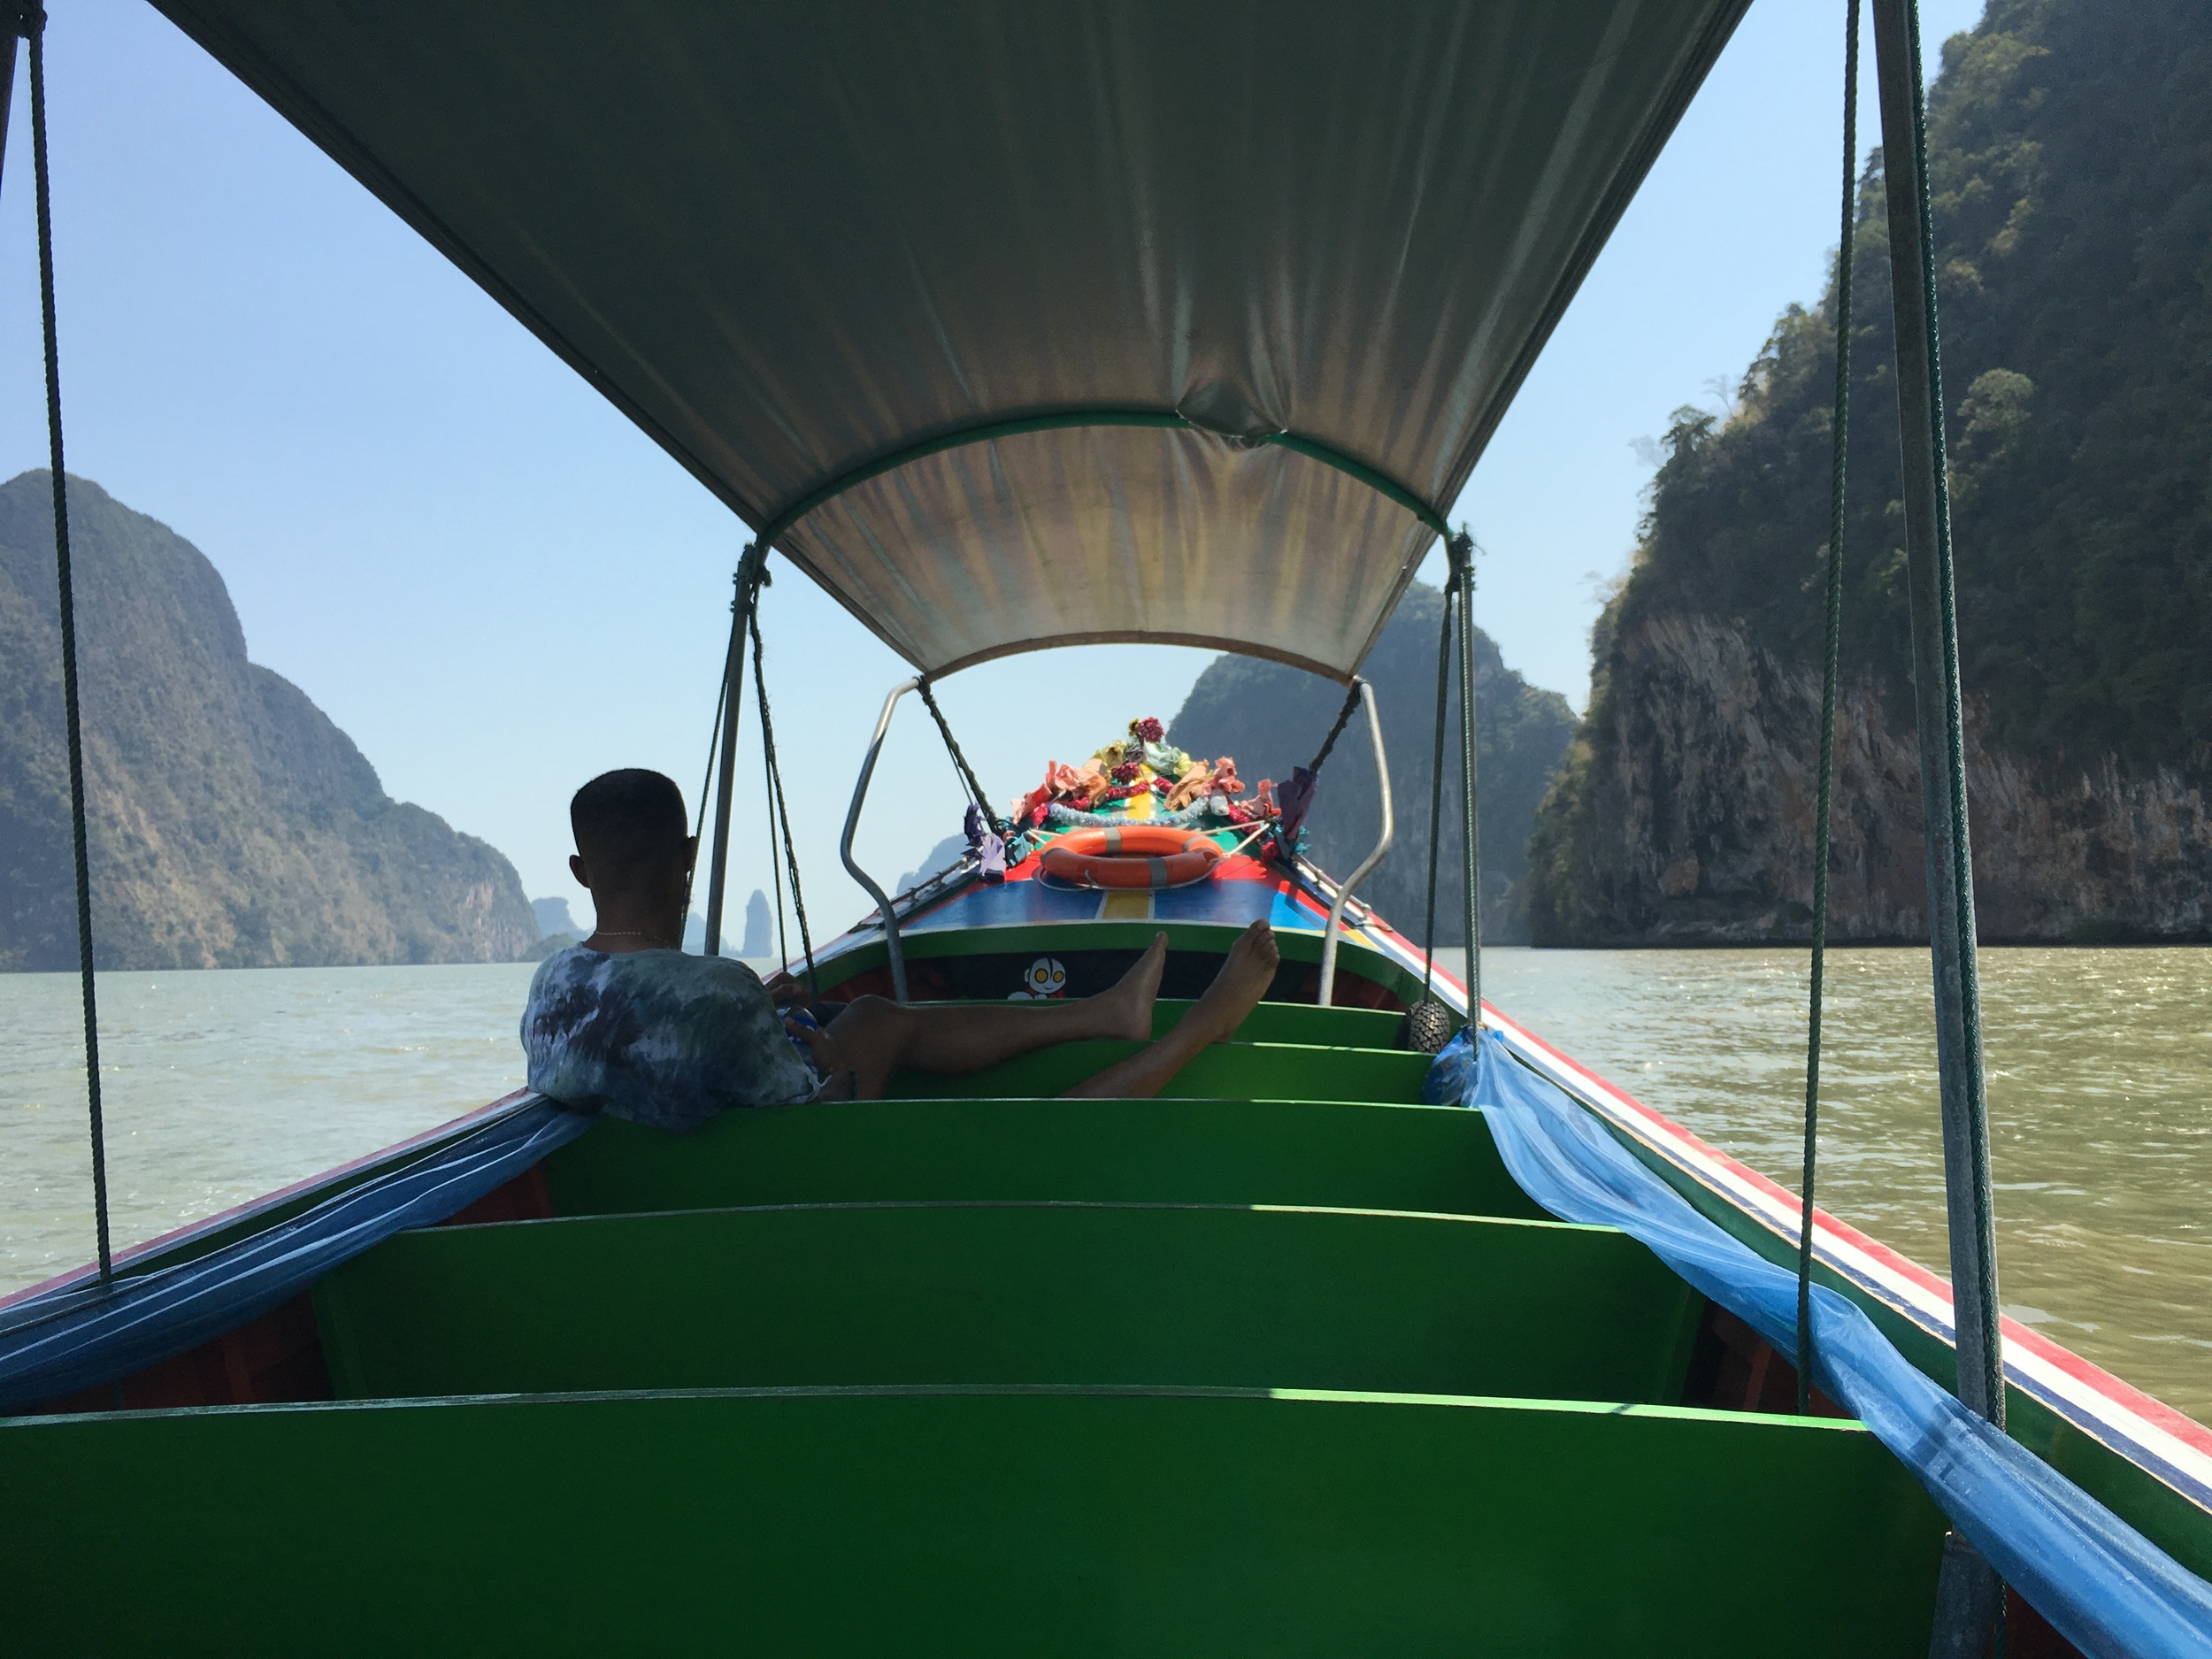 Touring James Bond Island from a speedboat rented just for us two.